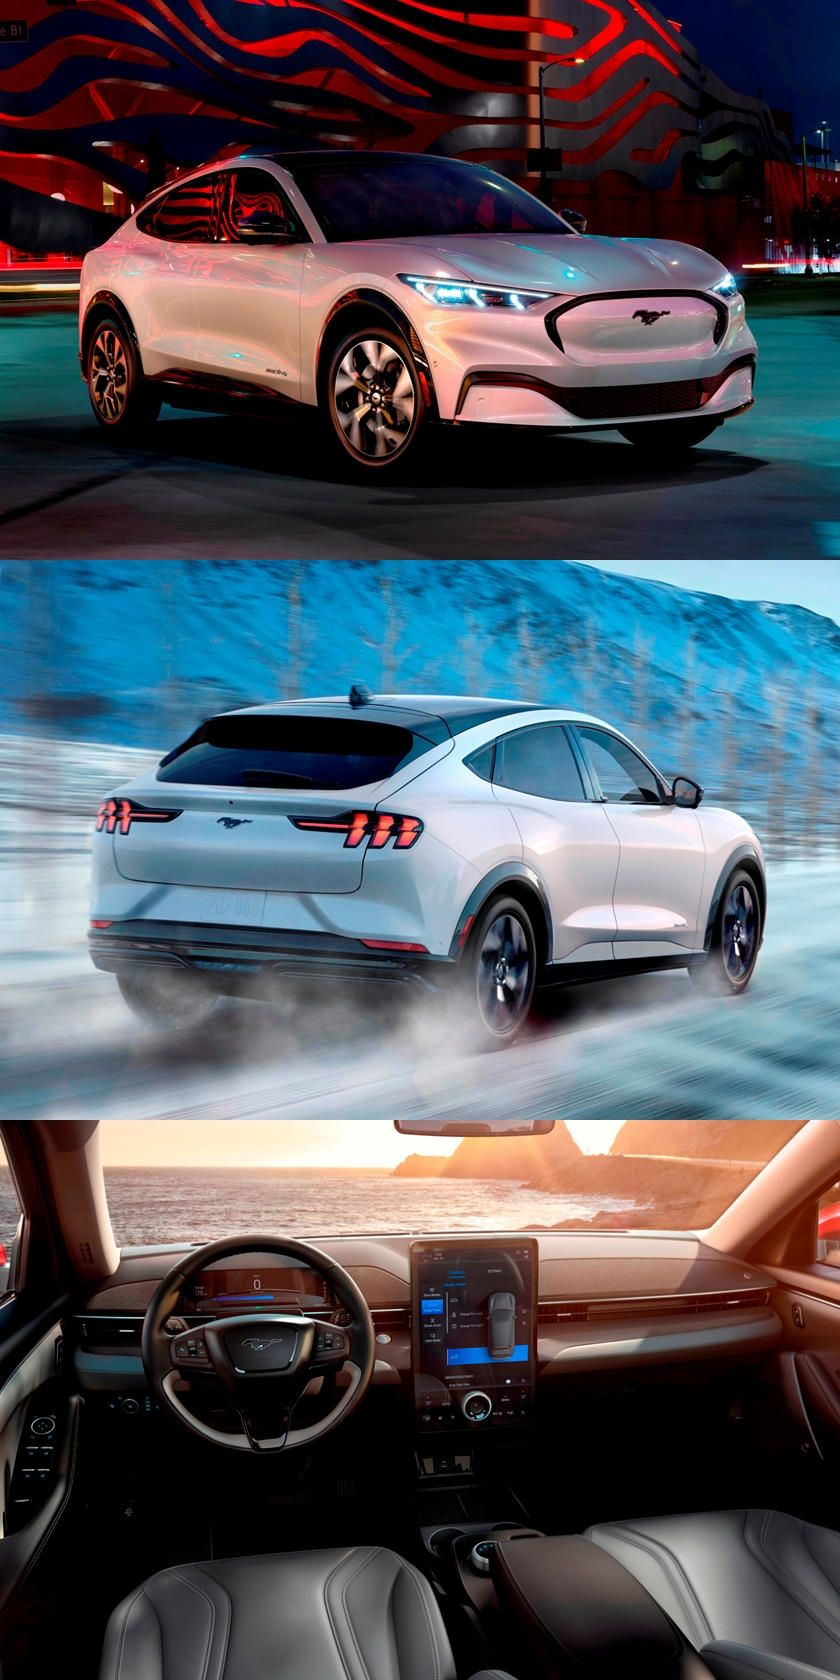 Silicon Valley Loves The 2021 Ford Mustang Mach E In 2020 Ford Mustang Mustang Silicon Valley